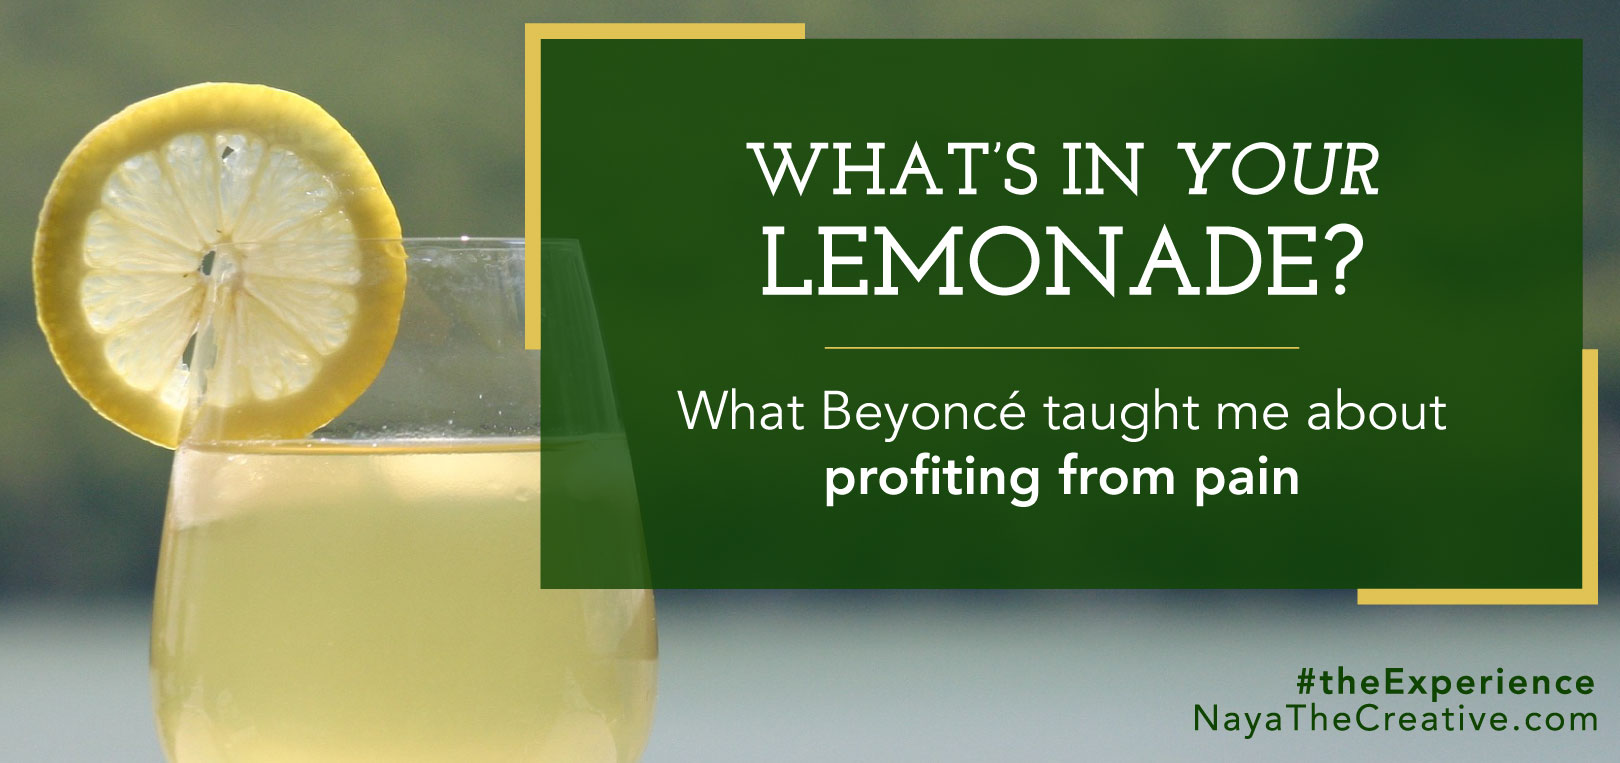 Beyonce's Lemonade: What's in YOUR lemonade?